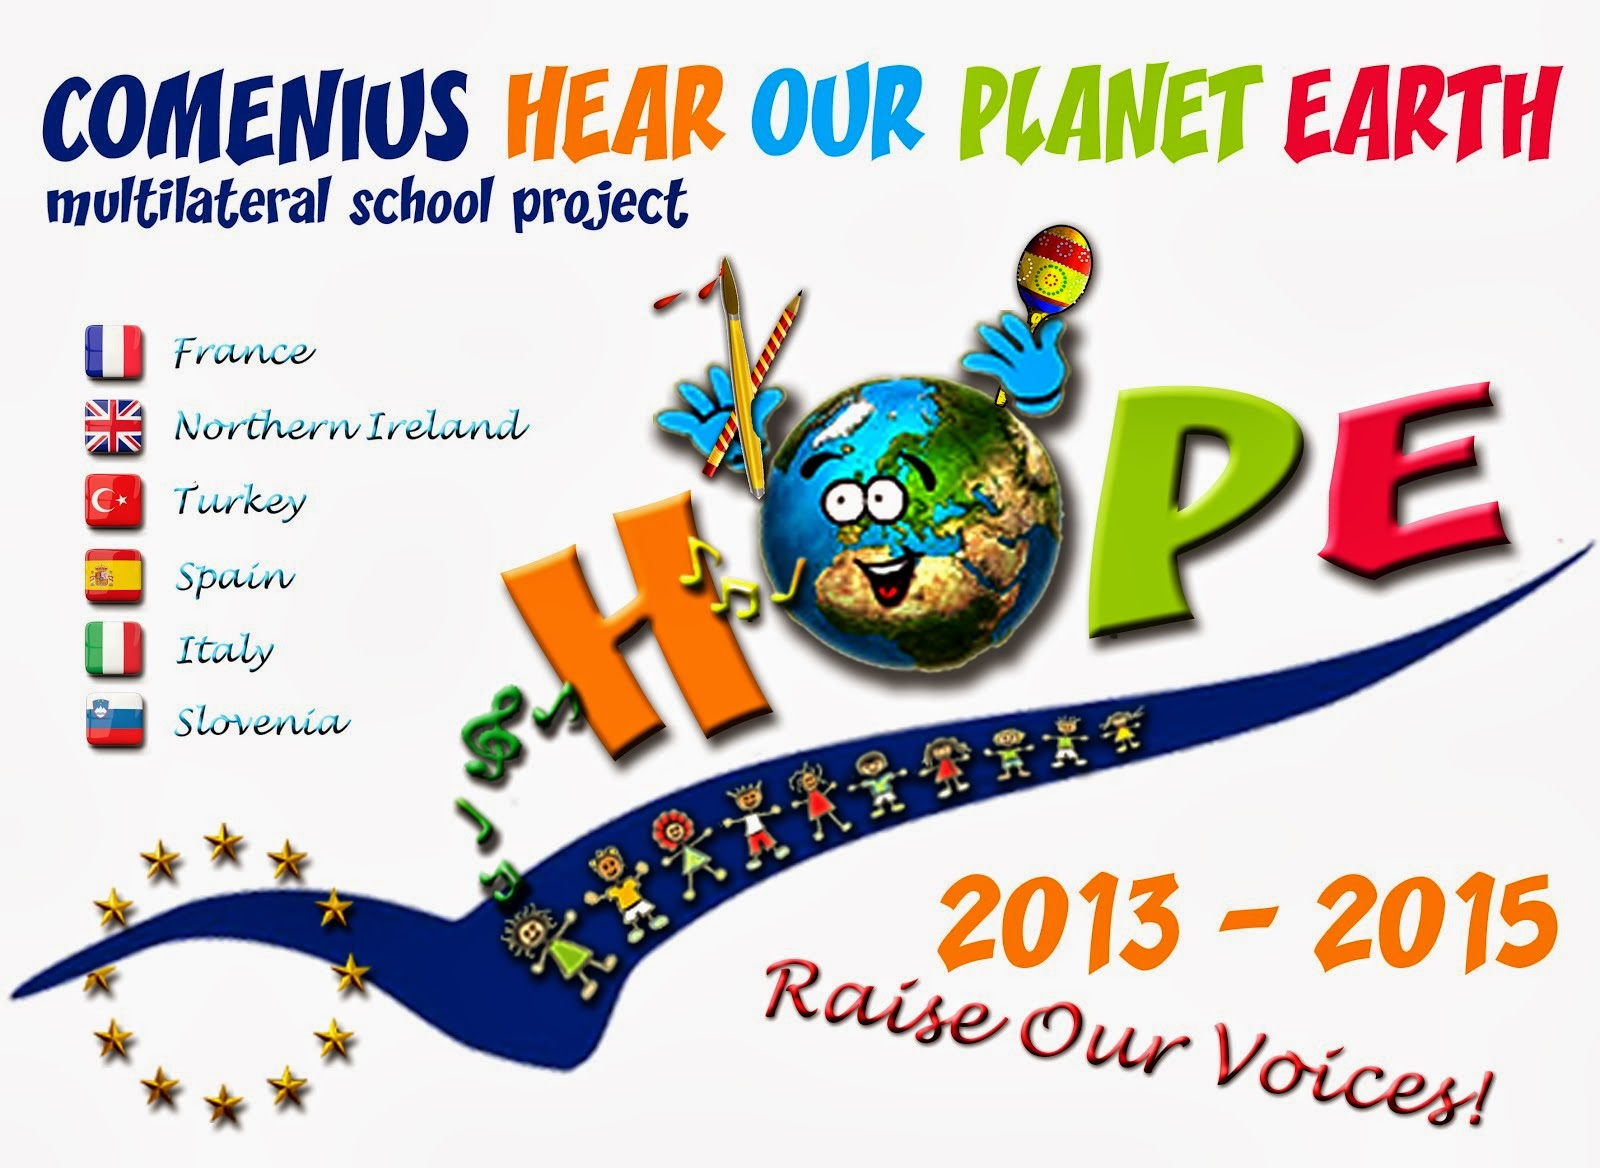 Comenius HOPE projekt